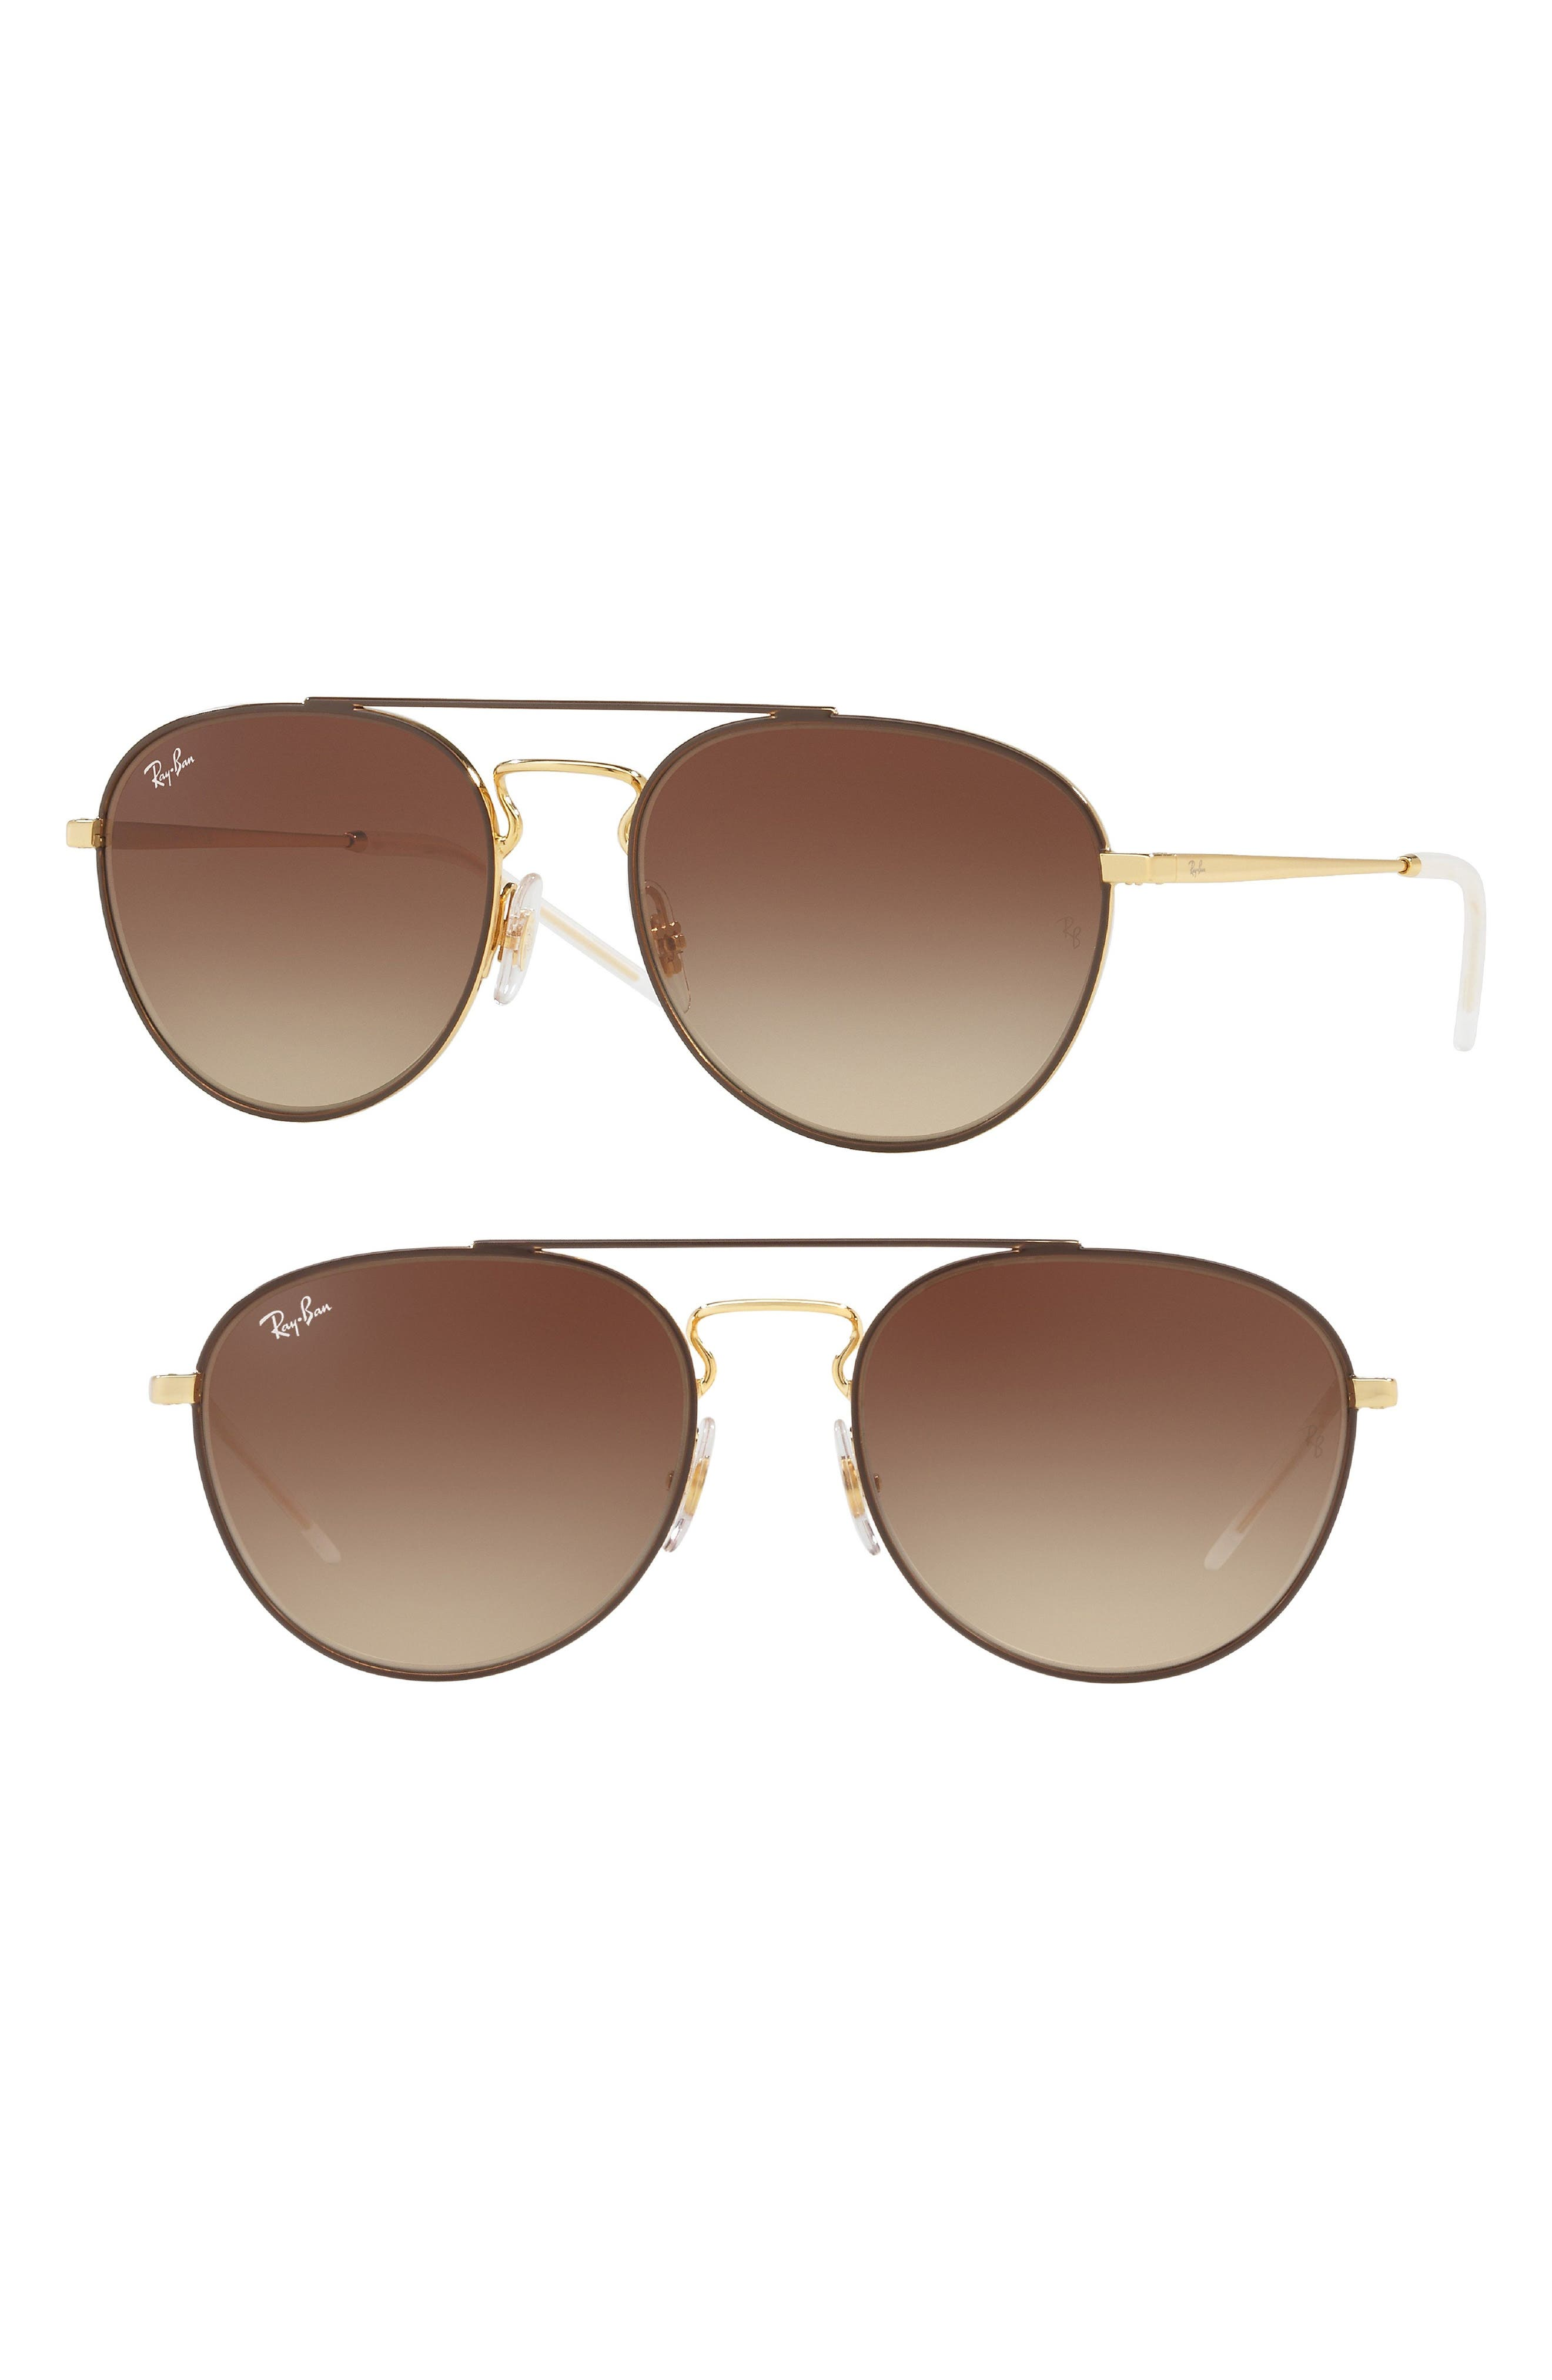 55mm Gradient Lens Round Aviator Sunglasses,                         Main,                         color, Gold Brown